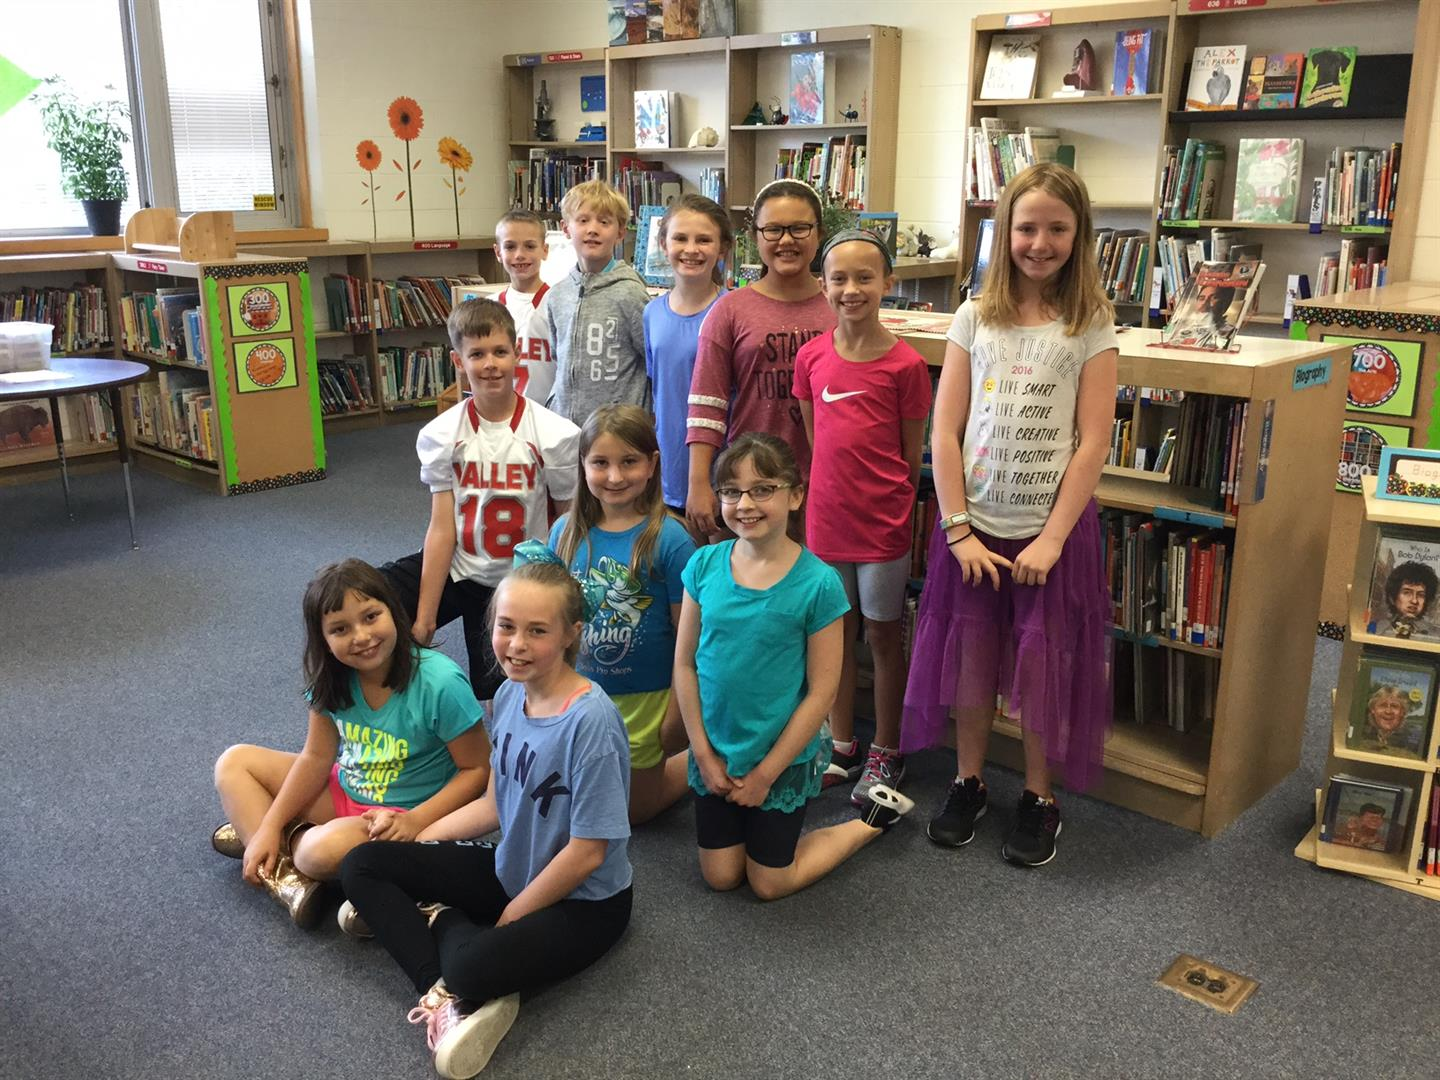 grade 4 reading bingo participants